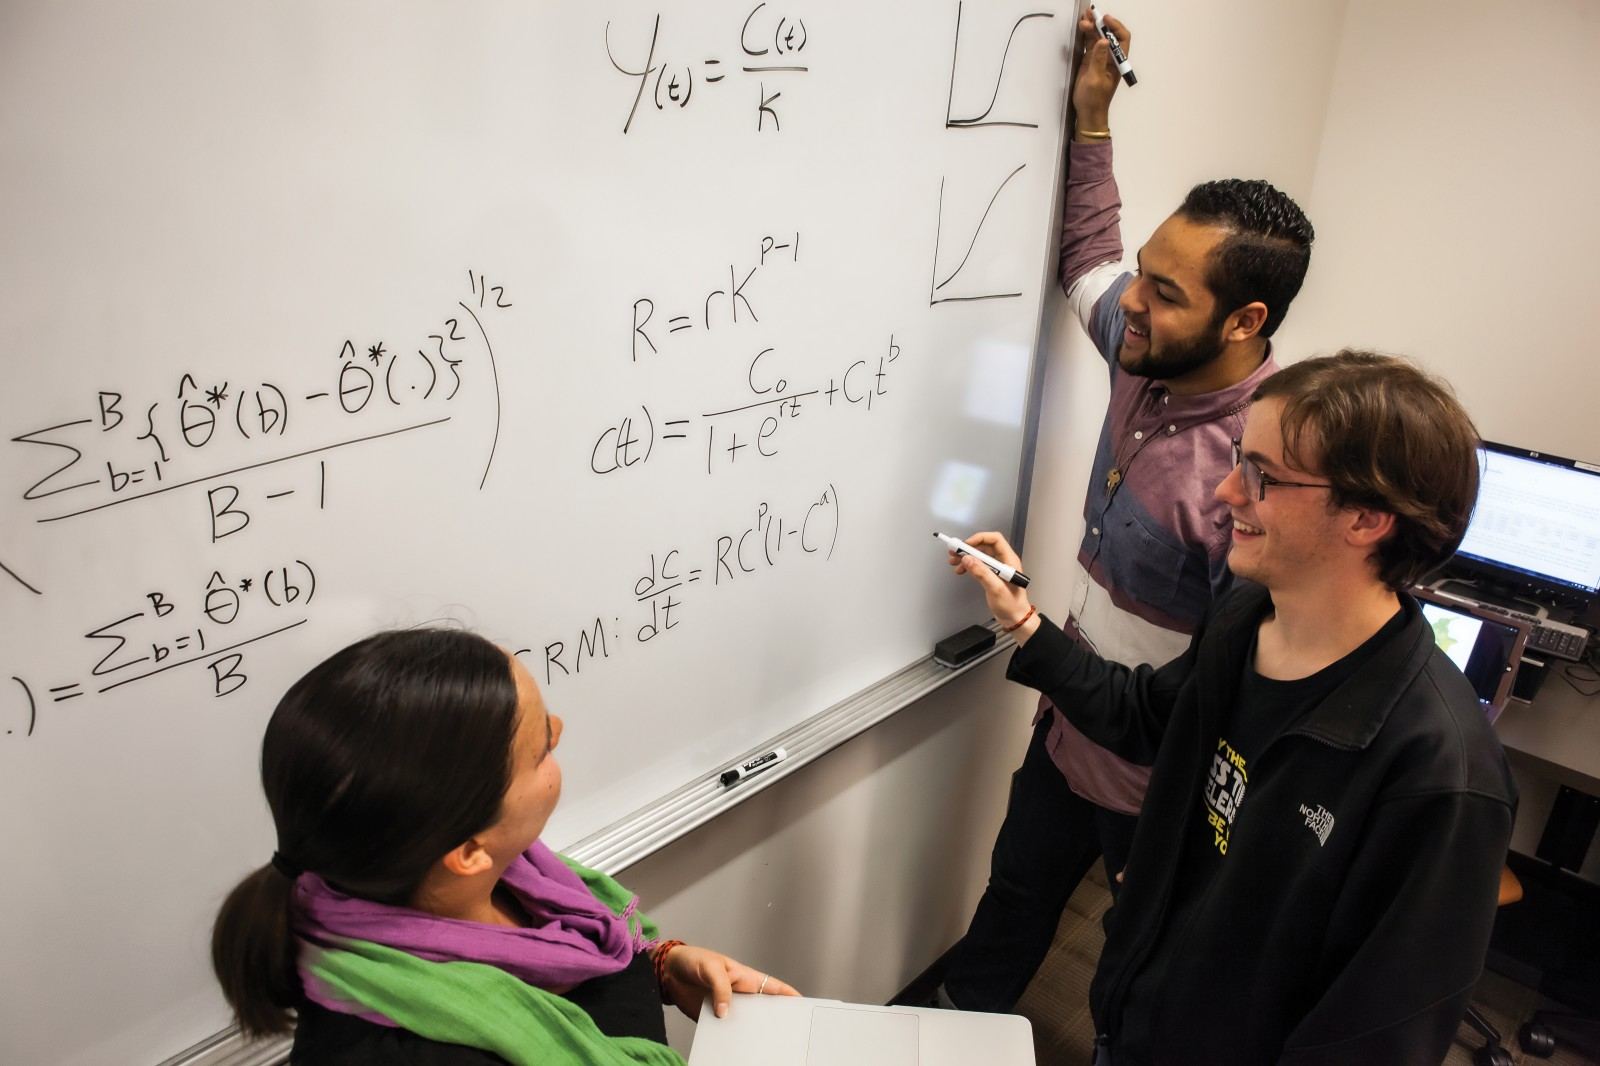 APU's applied mathematics major prepares quantitative experts in actuarial science, computer science, physics, teaching, mathematical research (for business, government, or the academy), cryptography, economics, statistics and data analysis, and more.